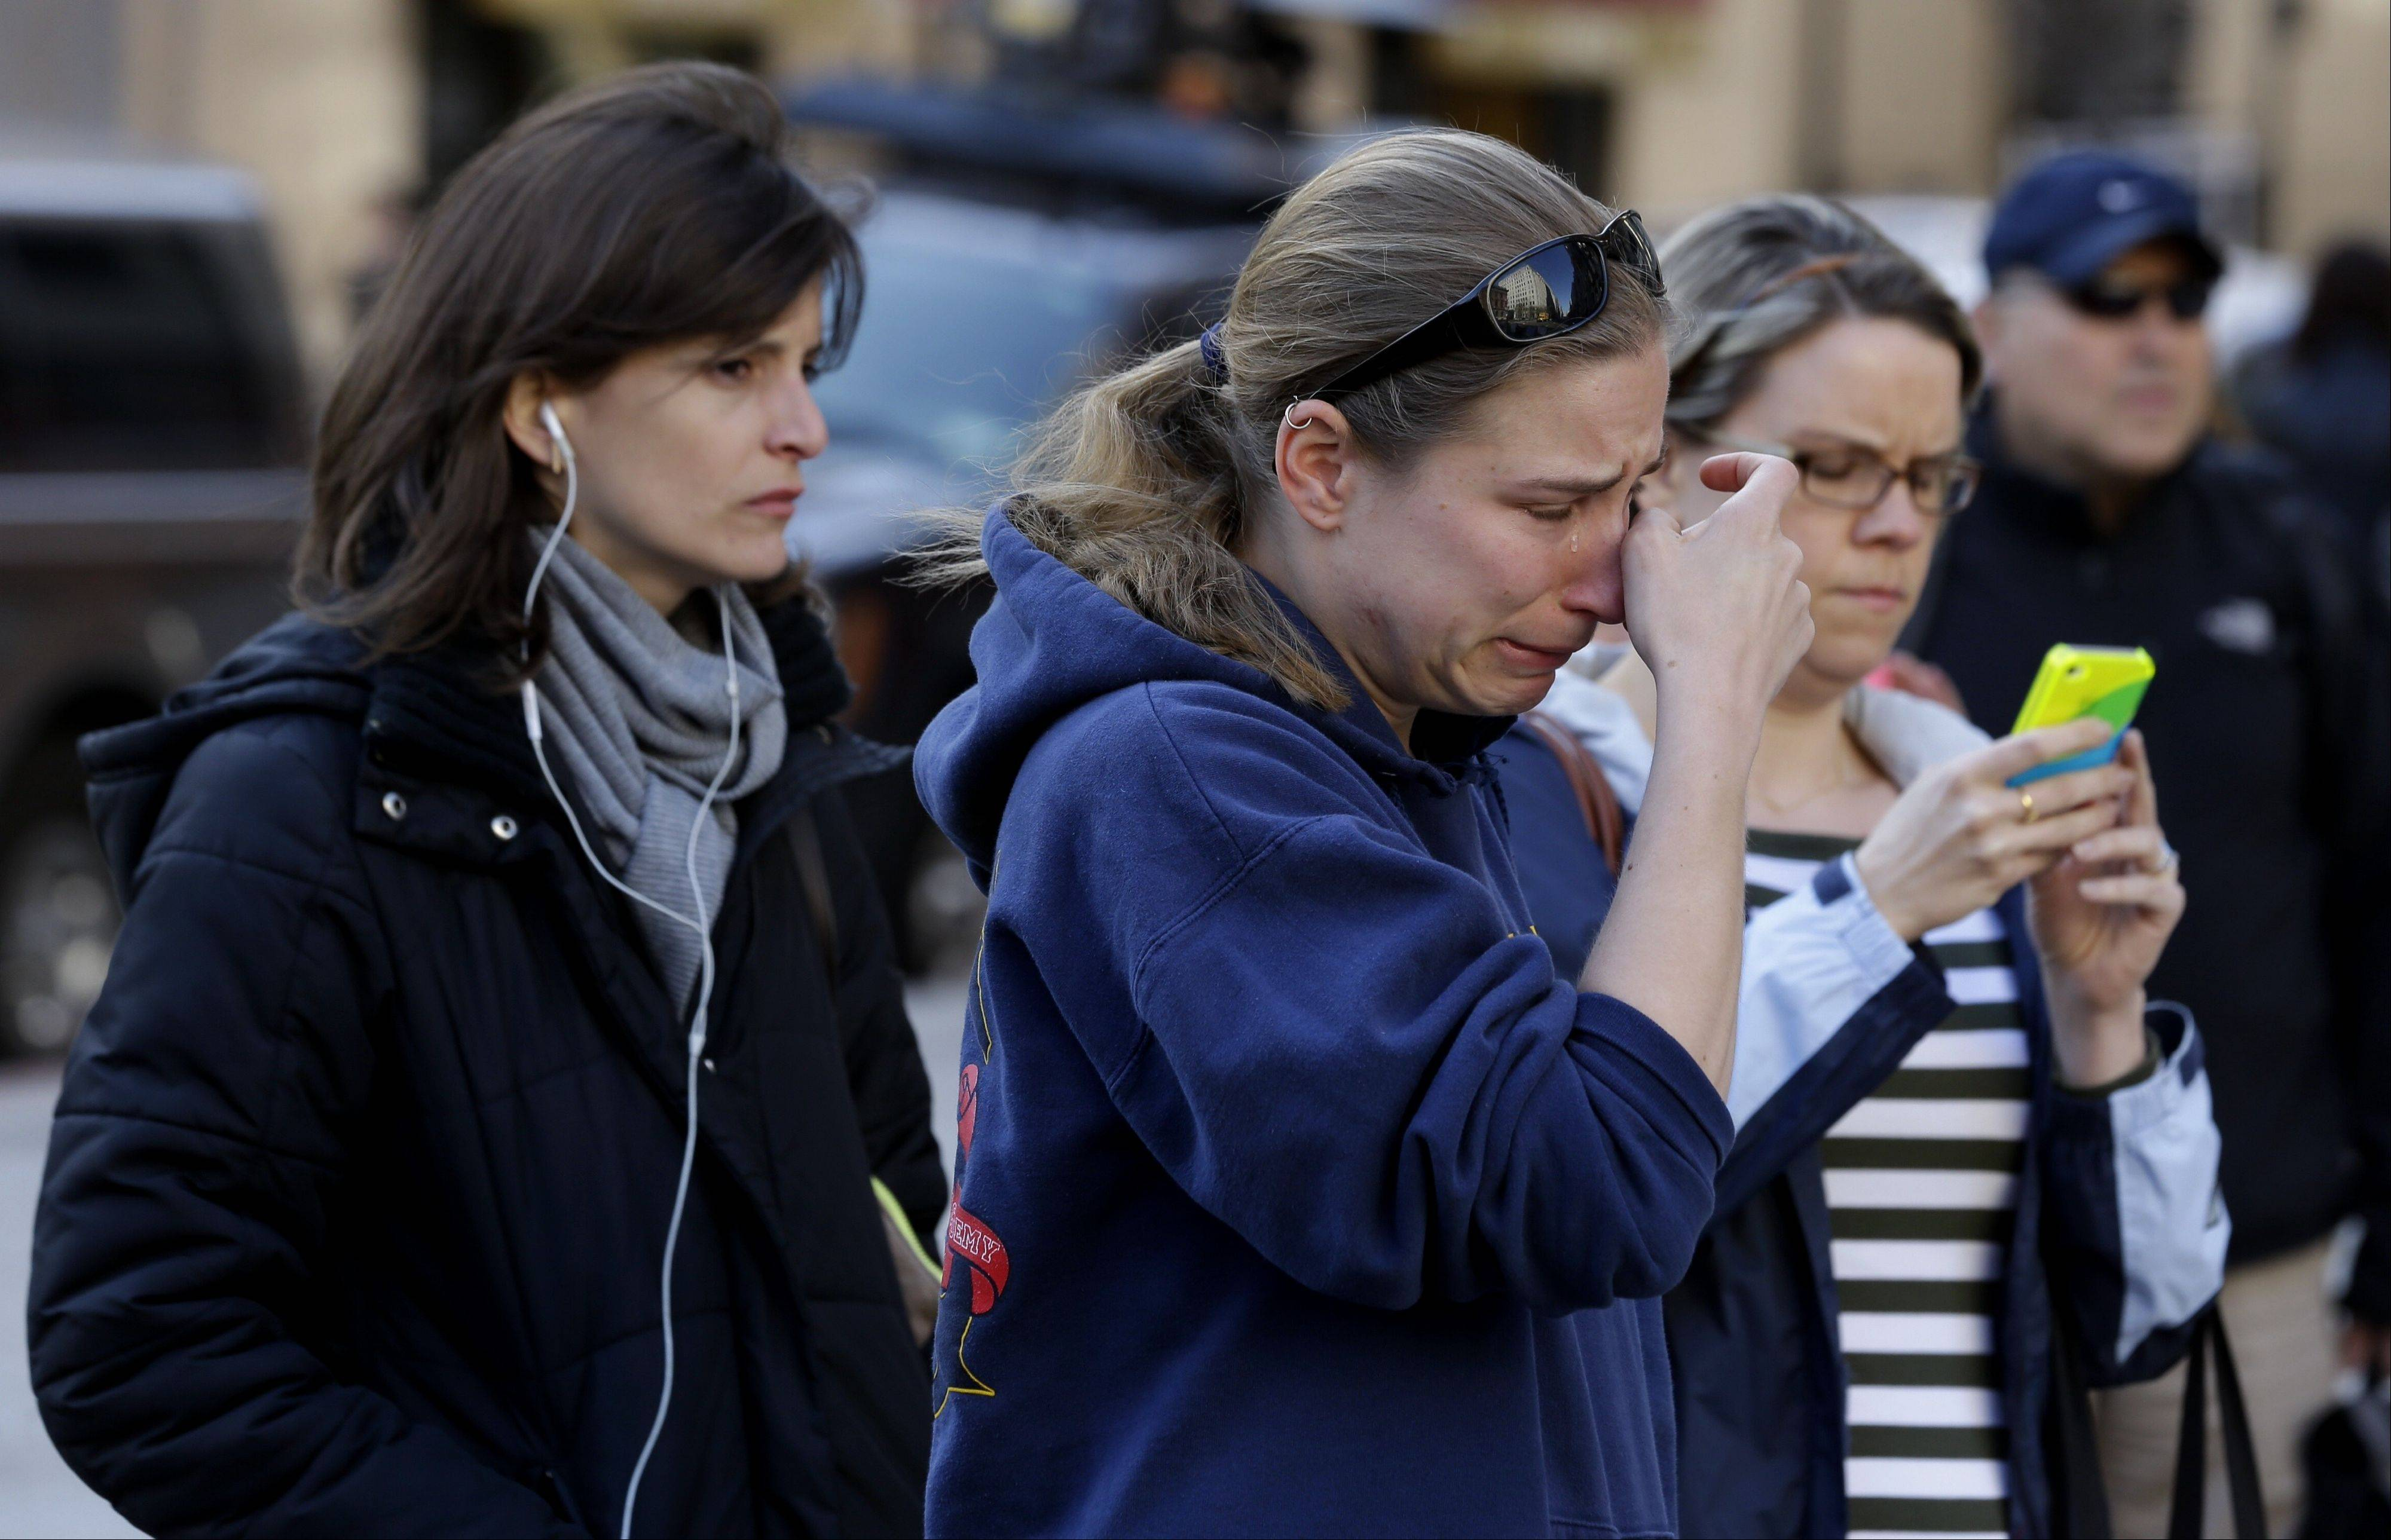 Jillian Blenis, 30, center, of Boston, reacts while stopping at a makeshift memorial, Wednesday, April 17, 2013, in Boston. The city continues to cope following Monday's explosions near the finish line of the Boston Marathon.